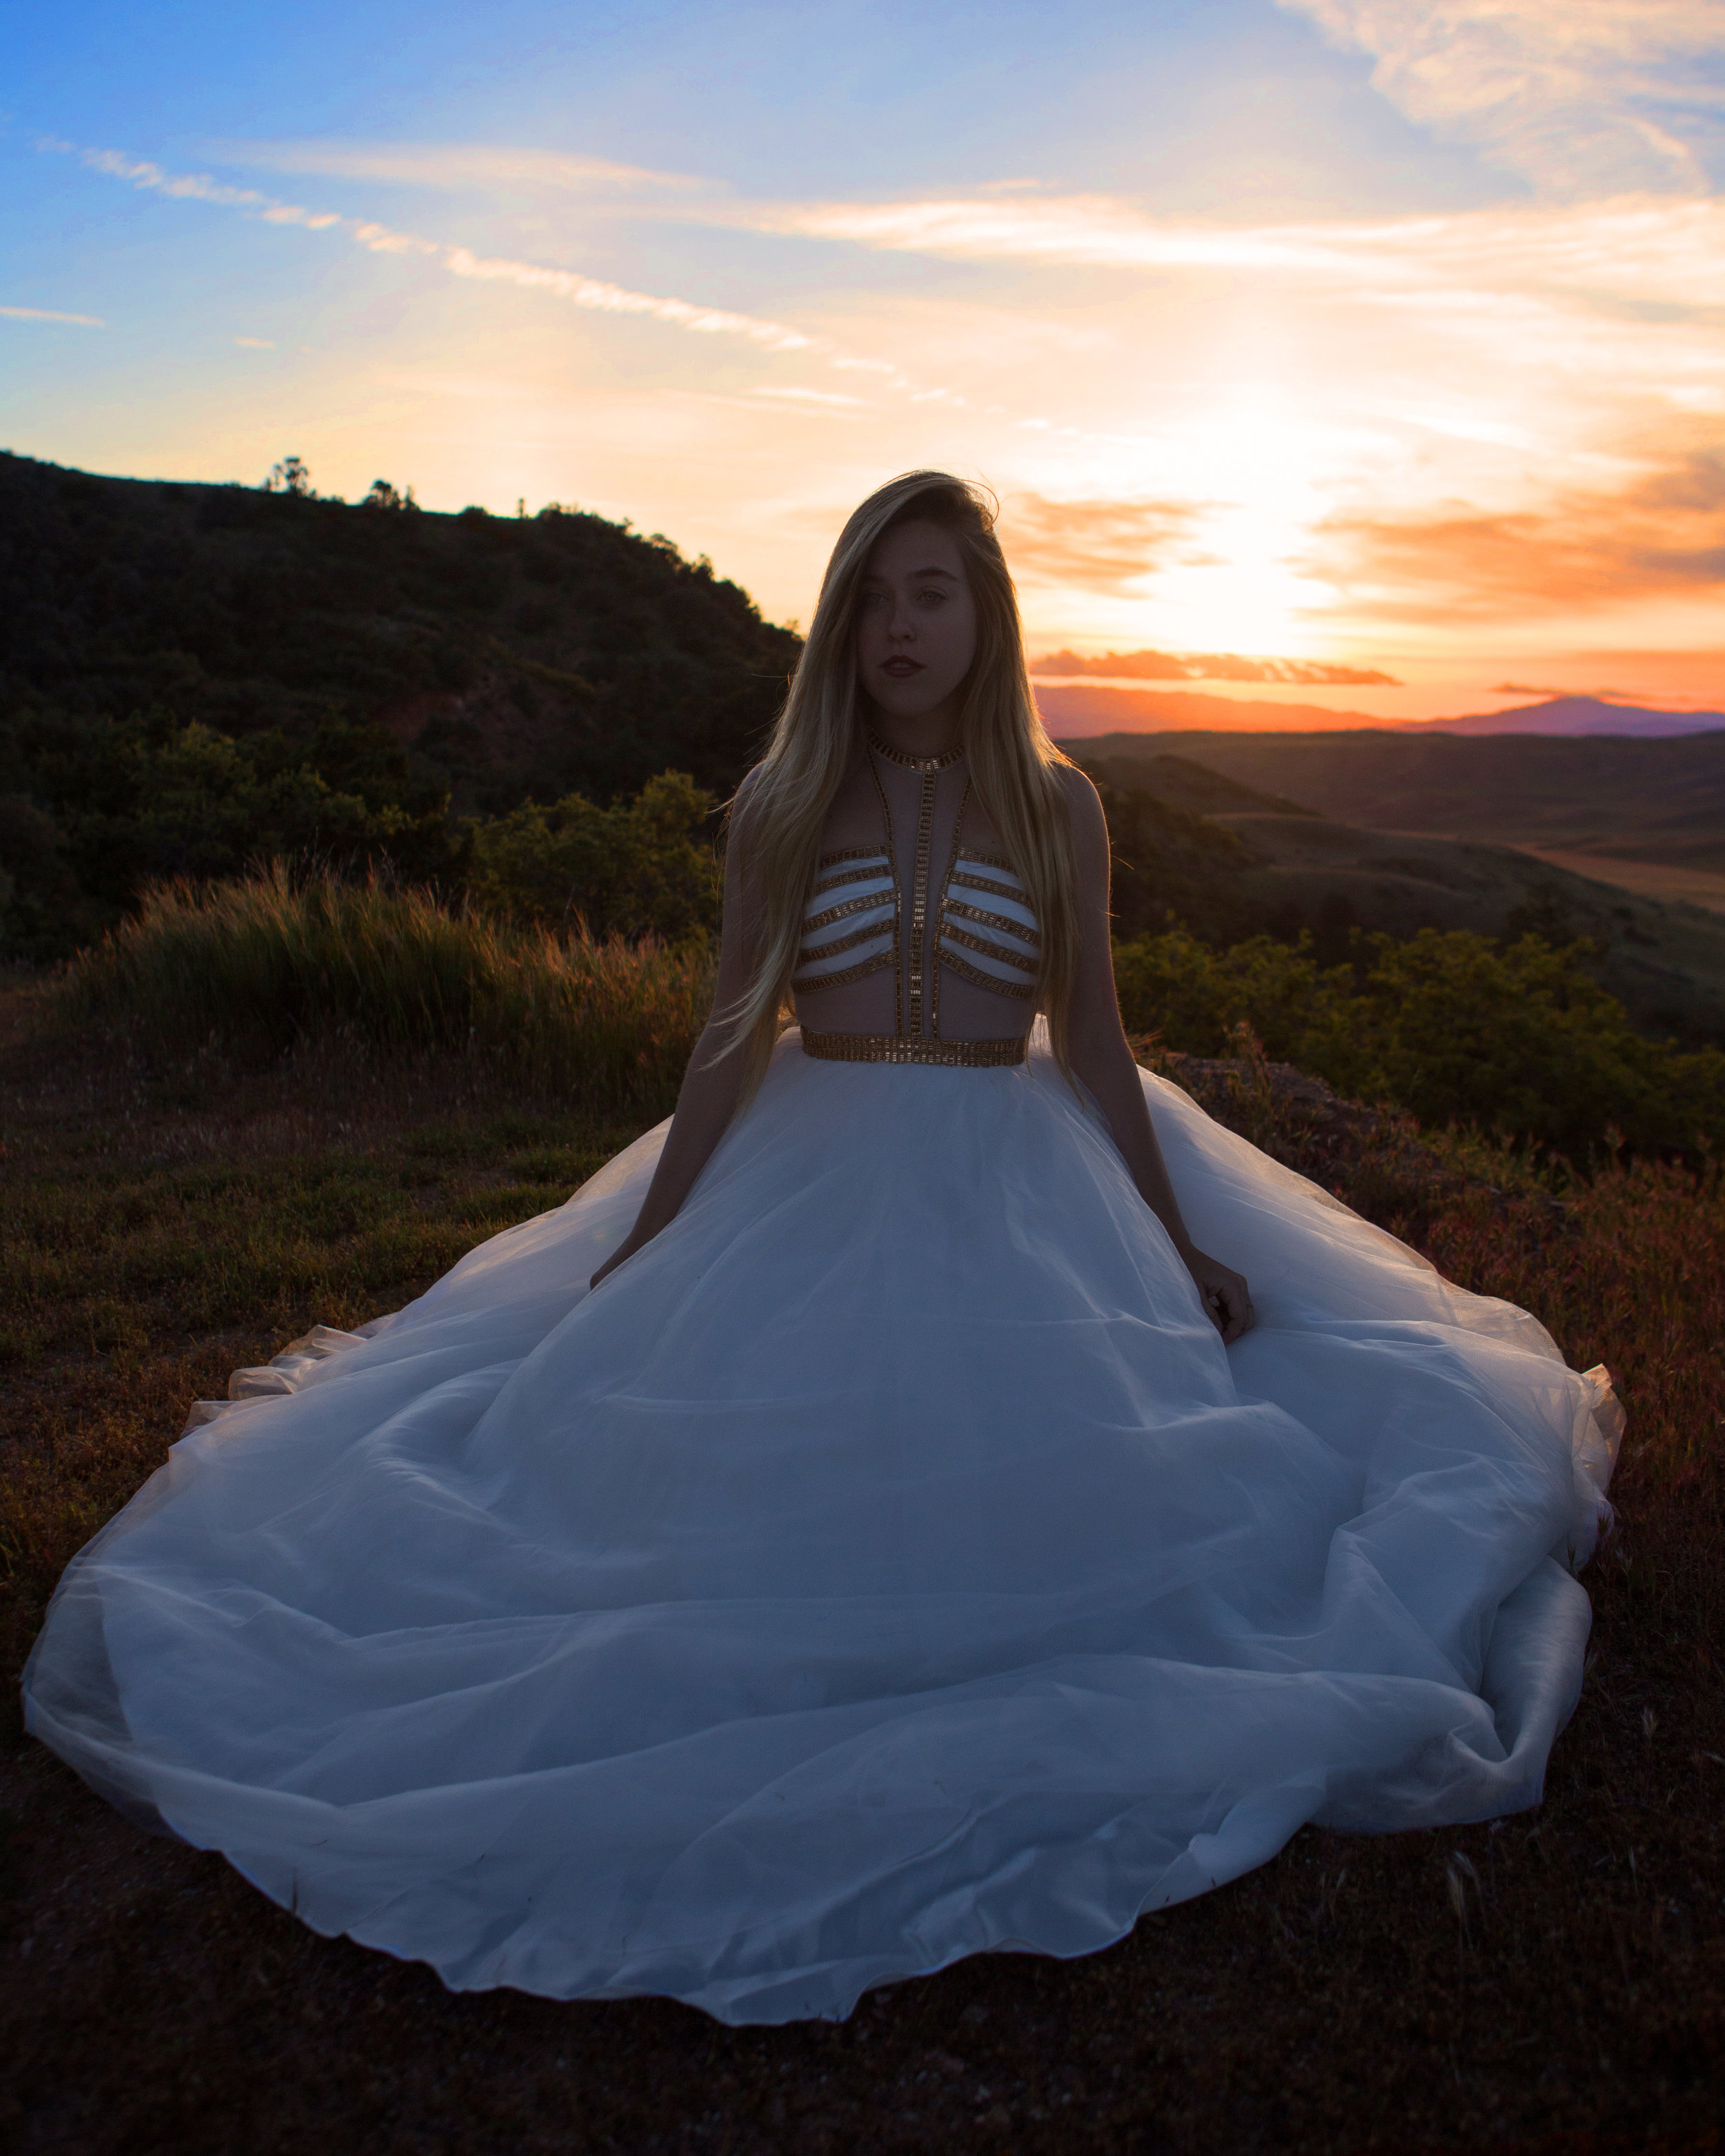 AstroBandit_MadisonJames_WhiteDress_LosPadresNationalForest_2.jpg